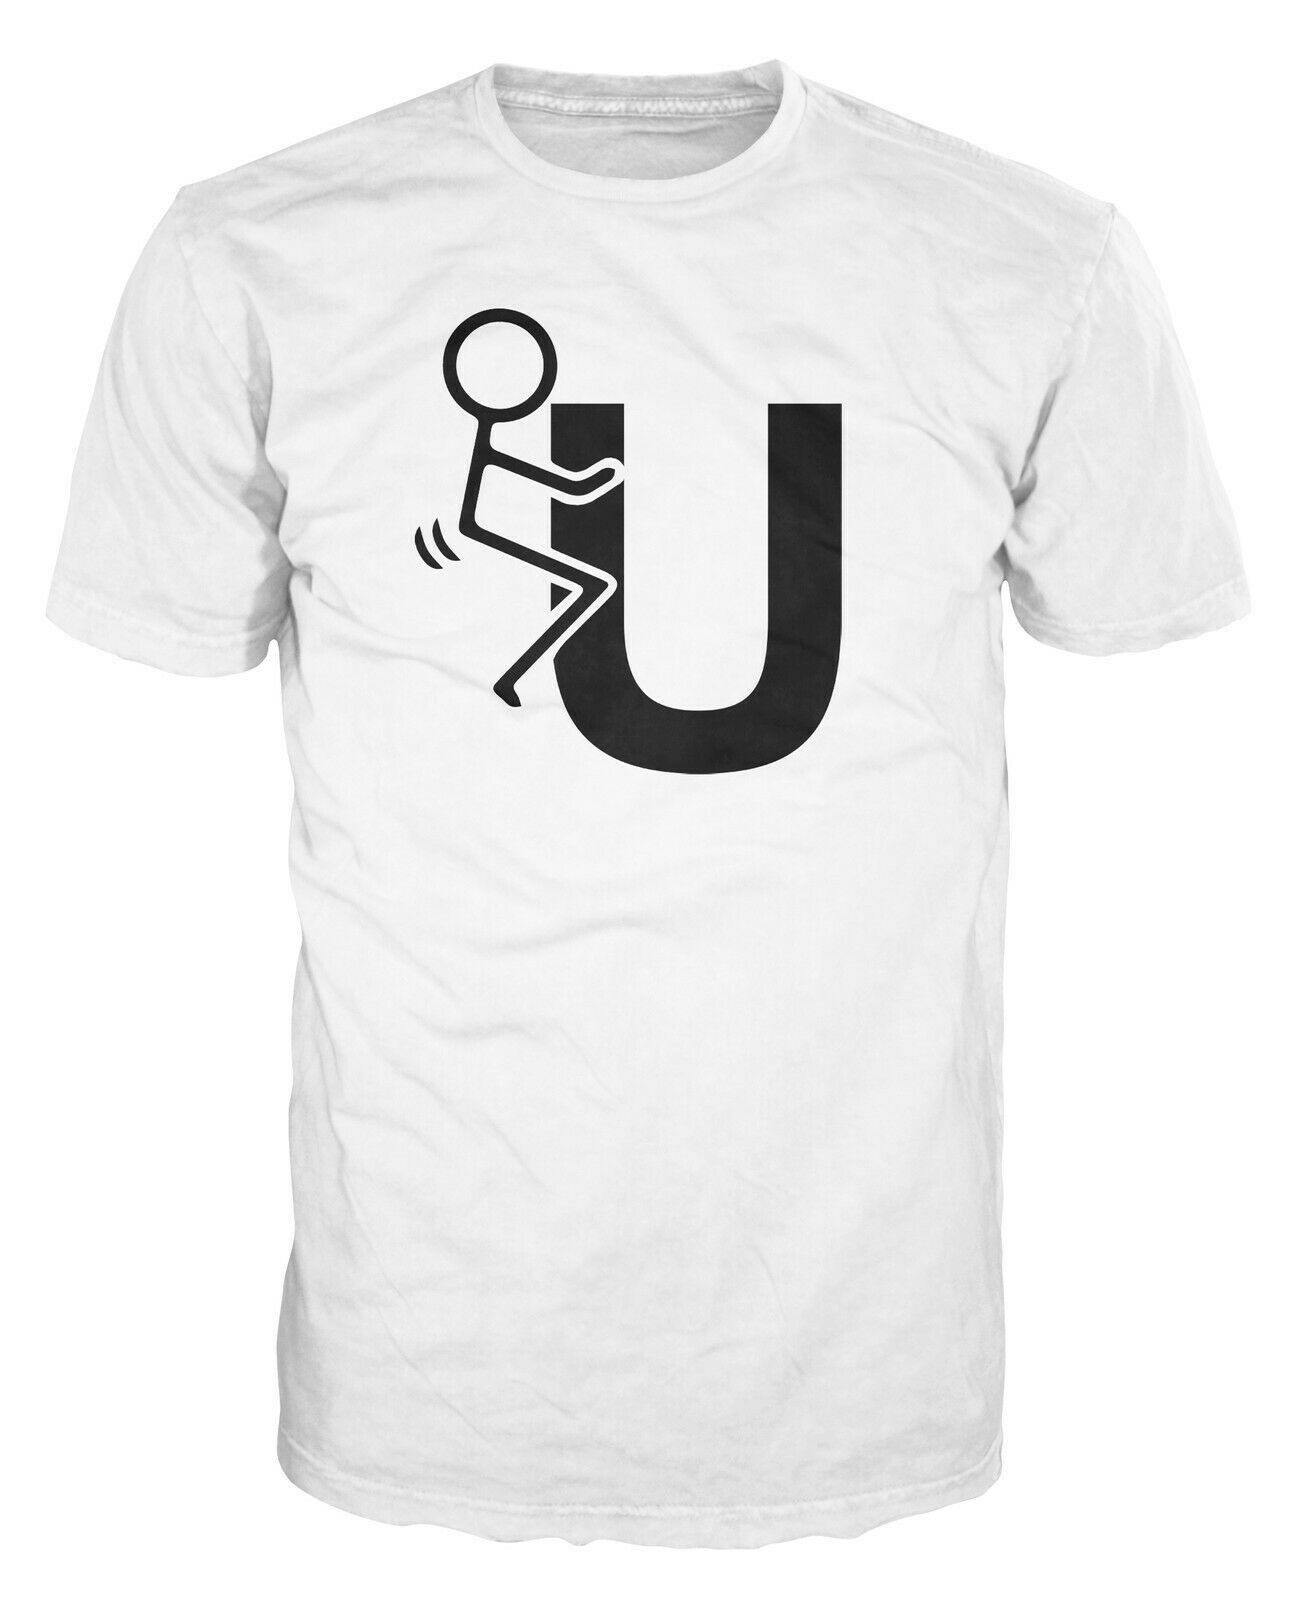 FAHQ Funny Rude Offensive Finger F*ck You Joke Party T-shirt